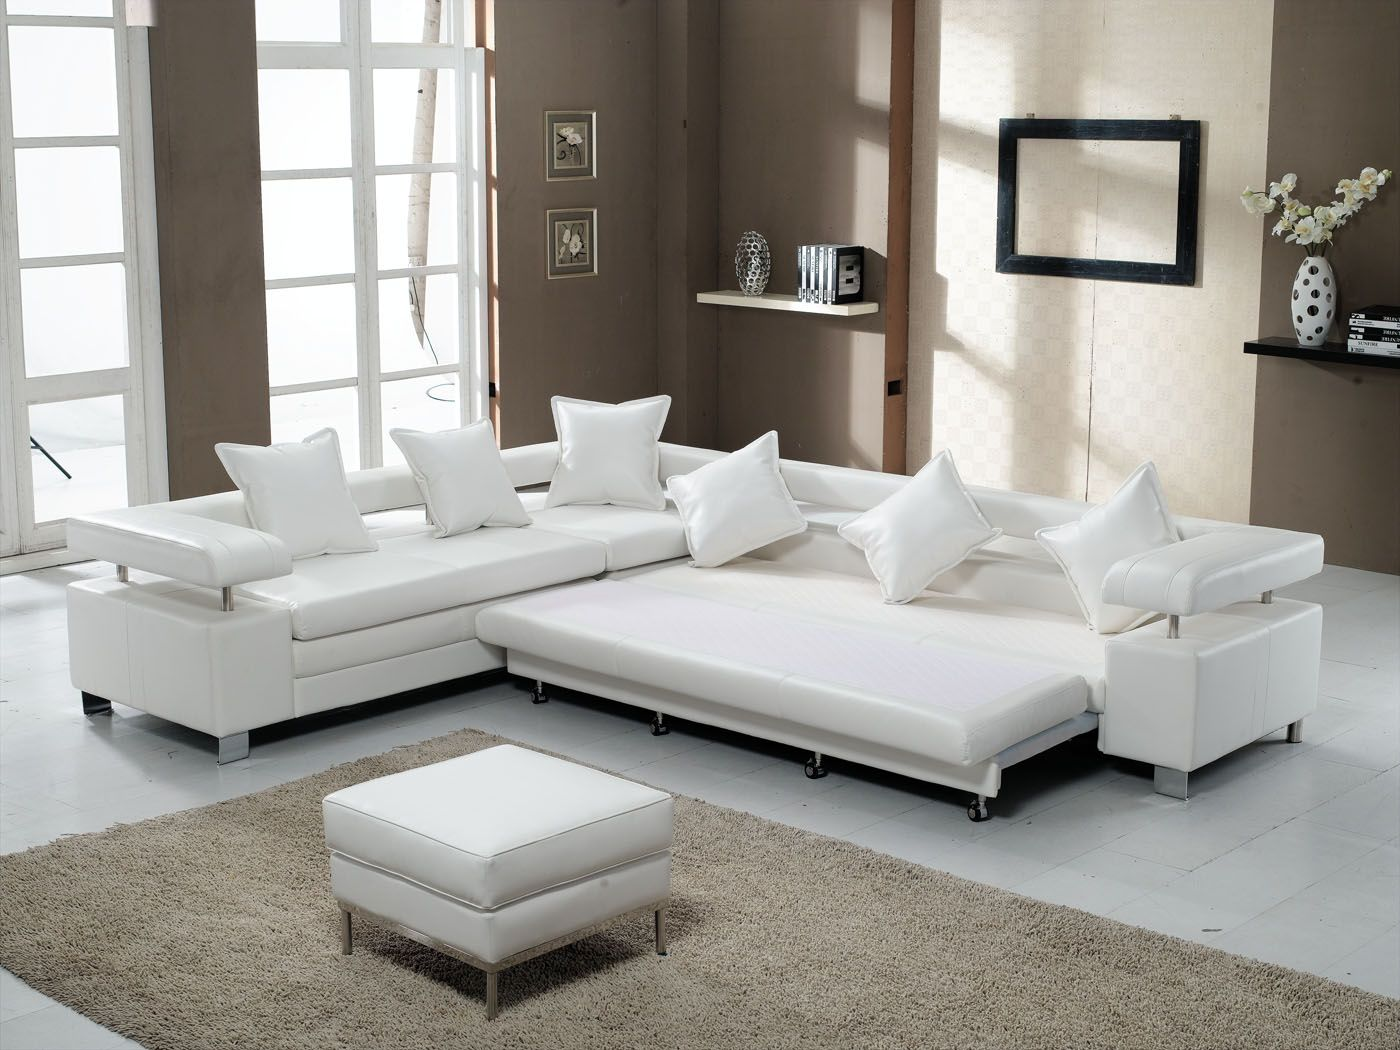 Sofa Green Sectional Sleeper L Shaped Modern Table With